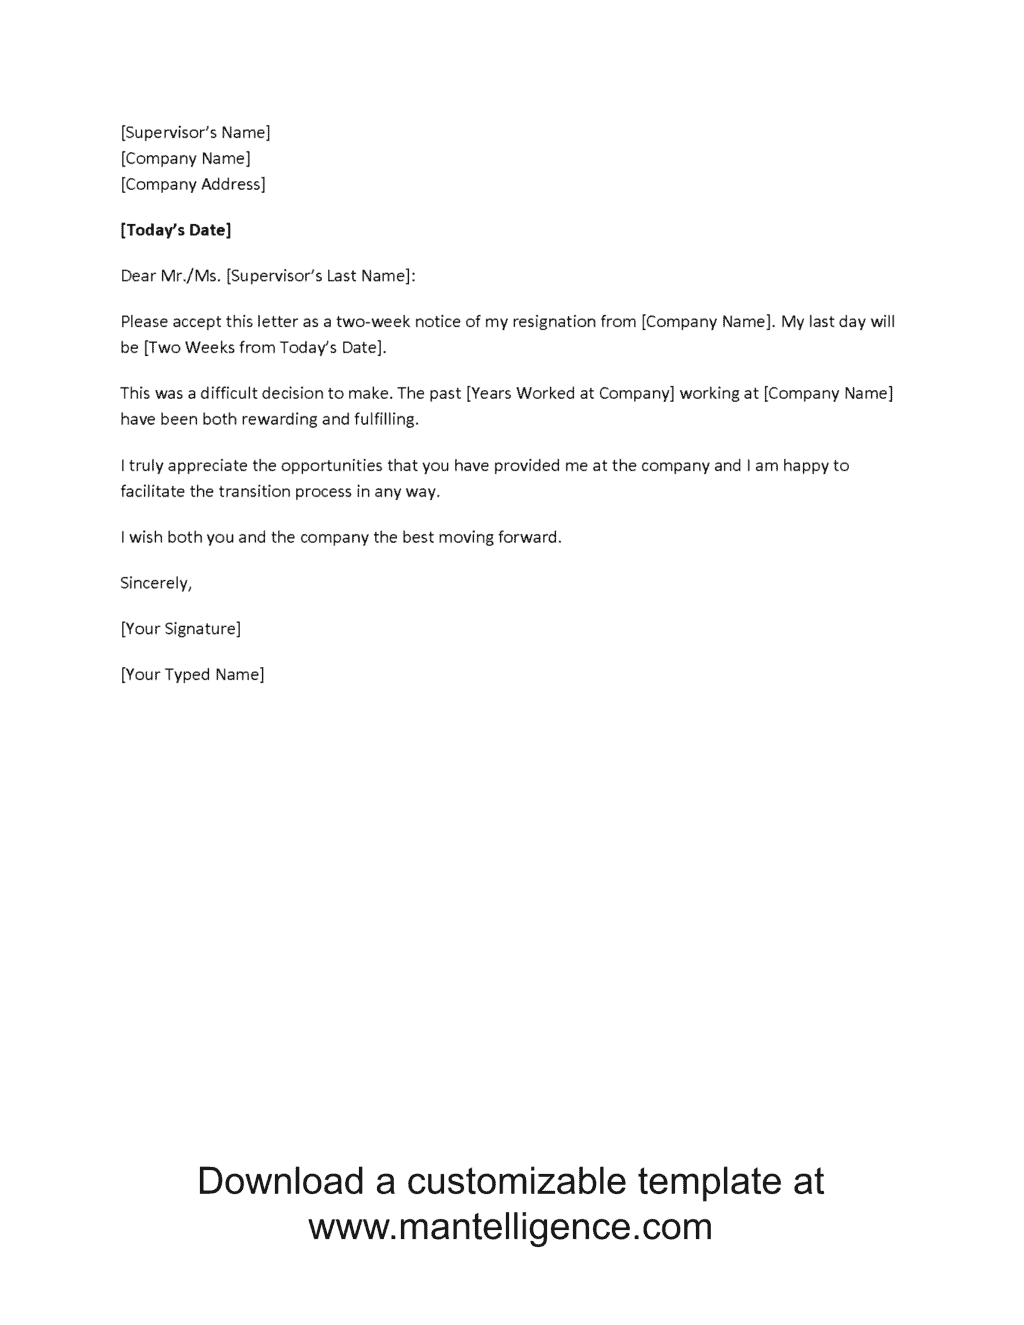 Highly Professional Two Weeks Notice Letter Templates fWyVT9U9